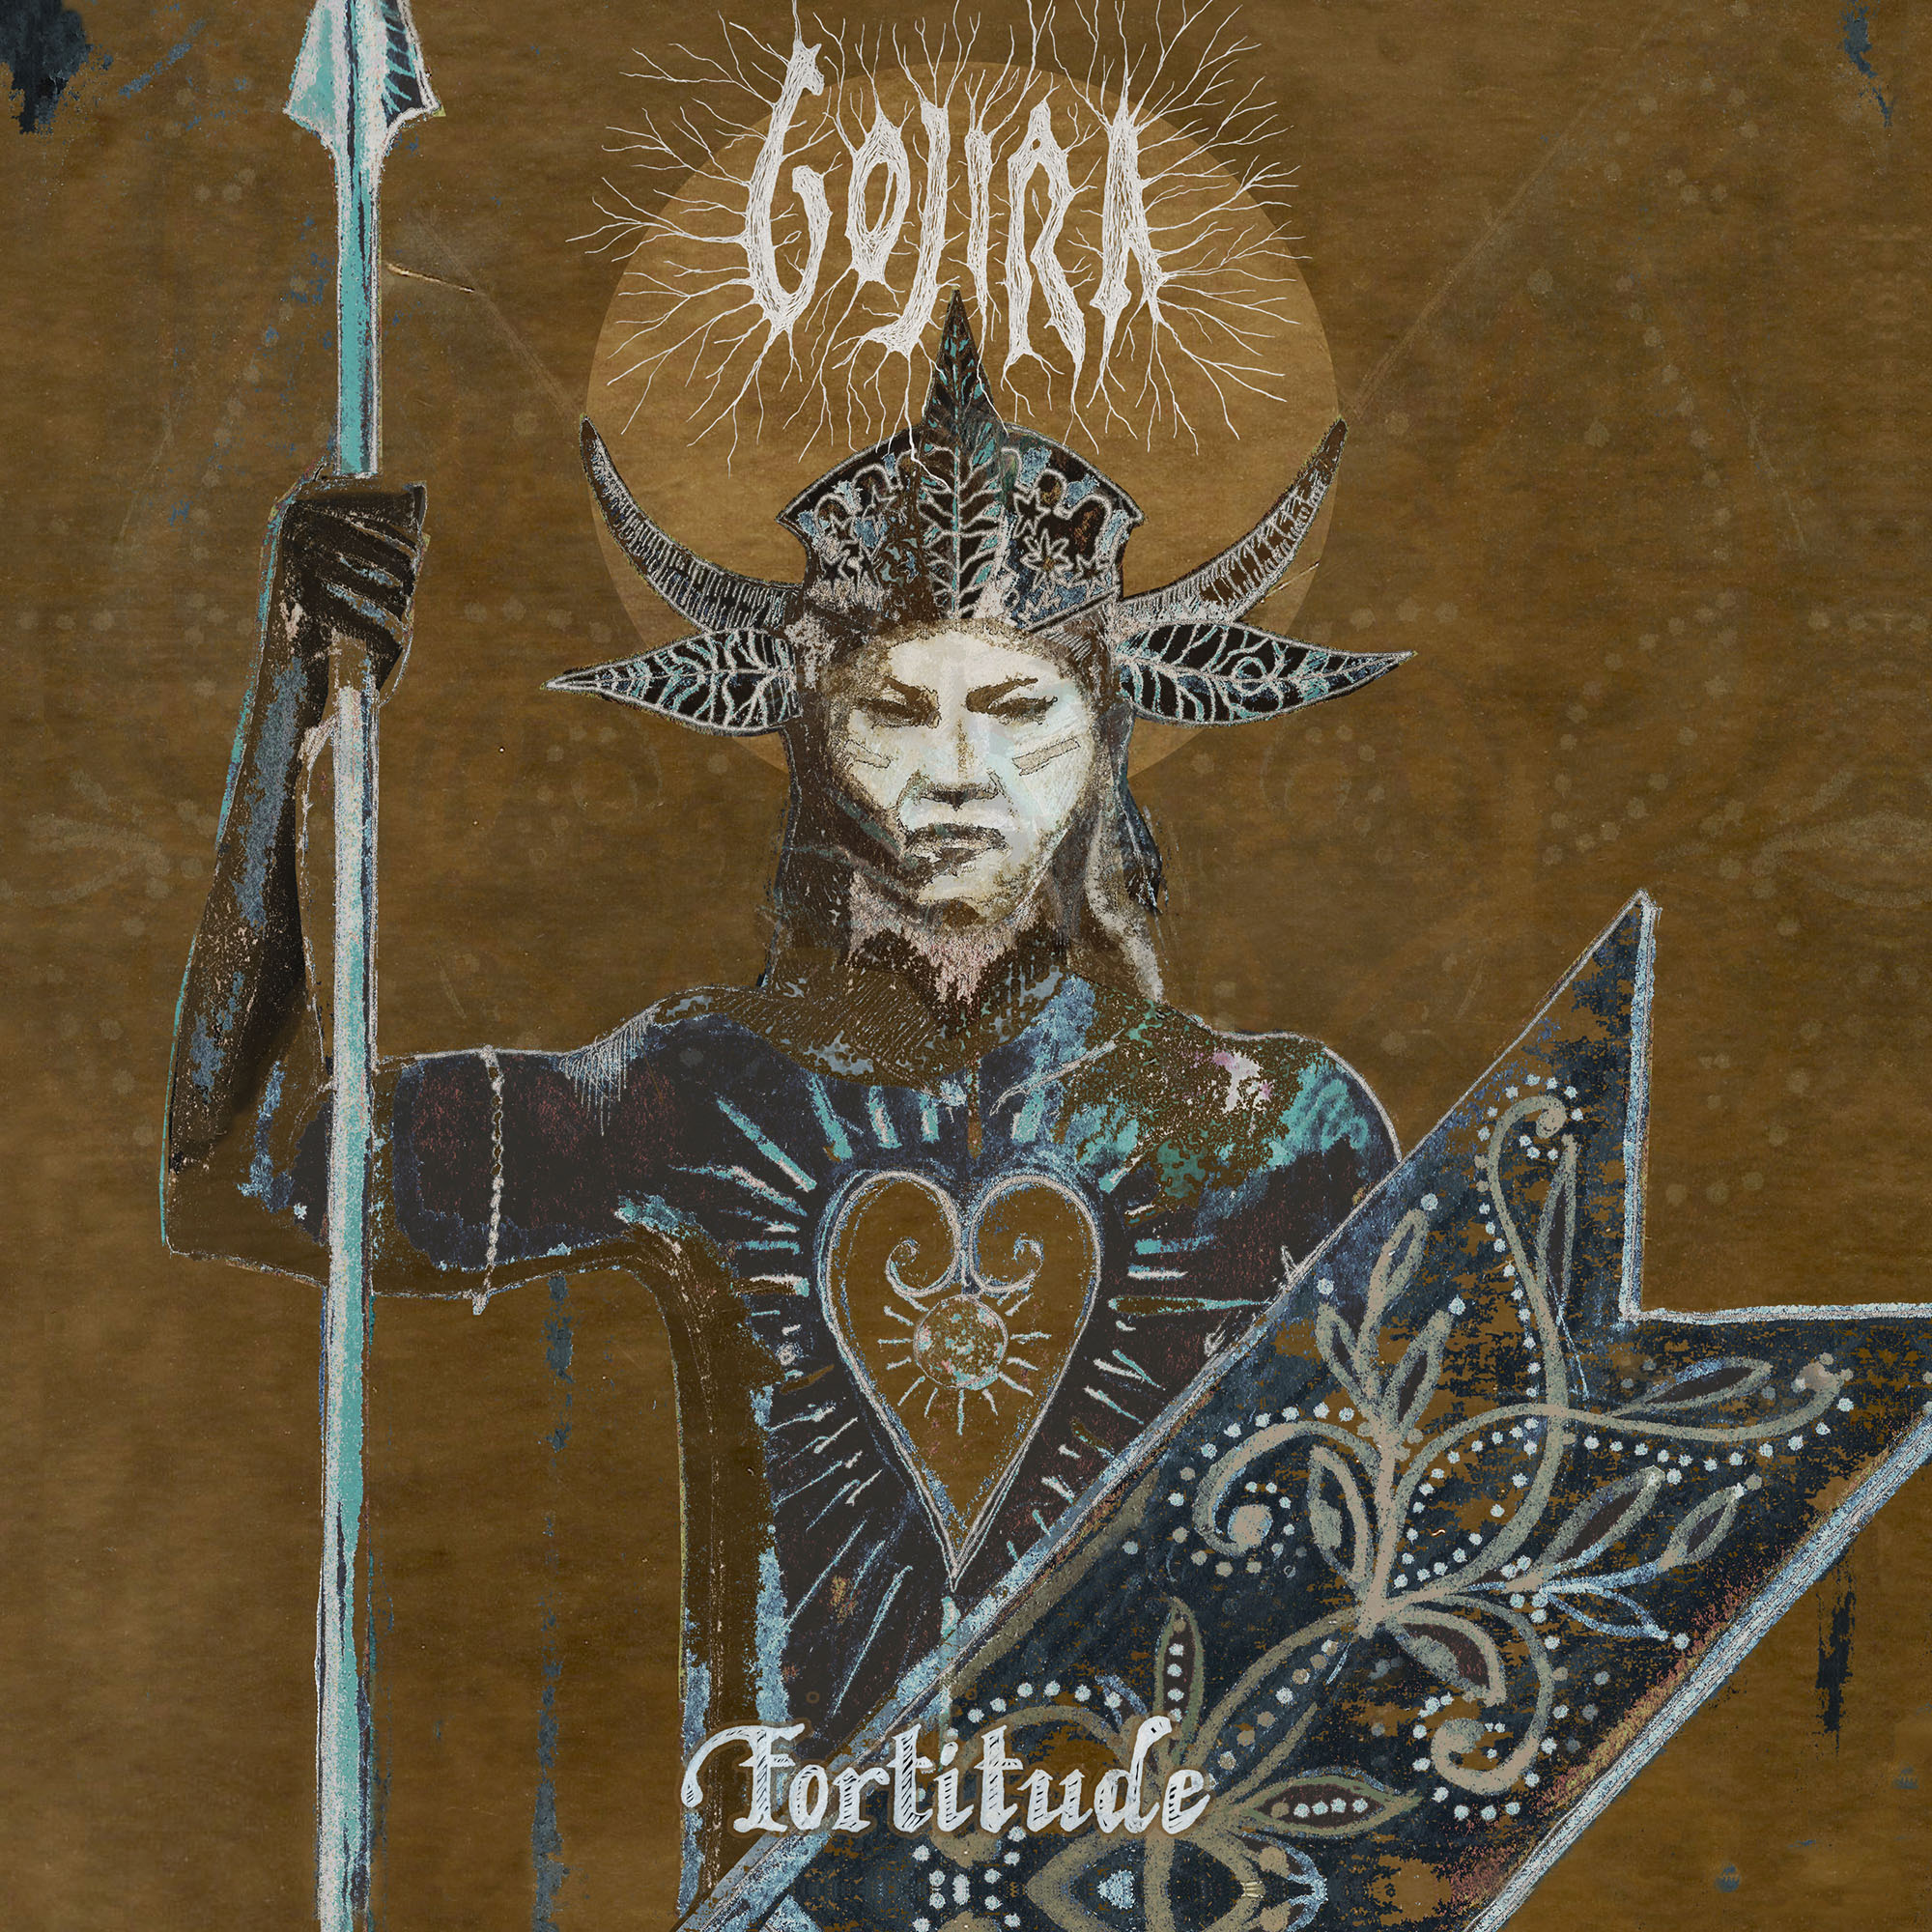 Critique d'album: GOJIRA Fortitude